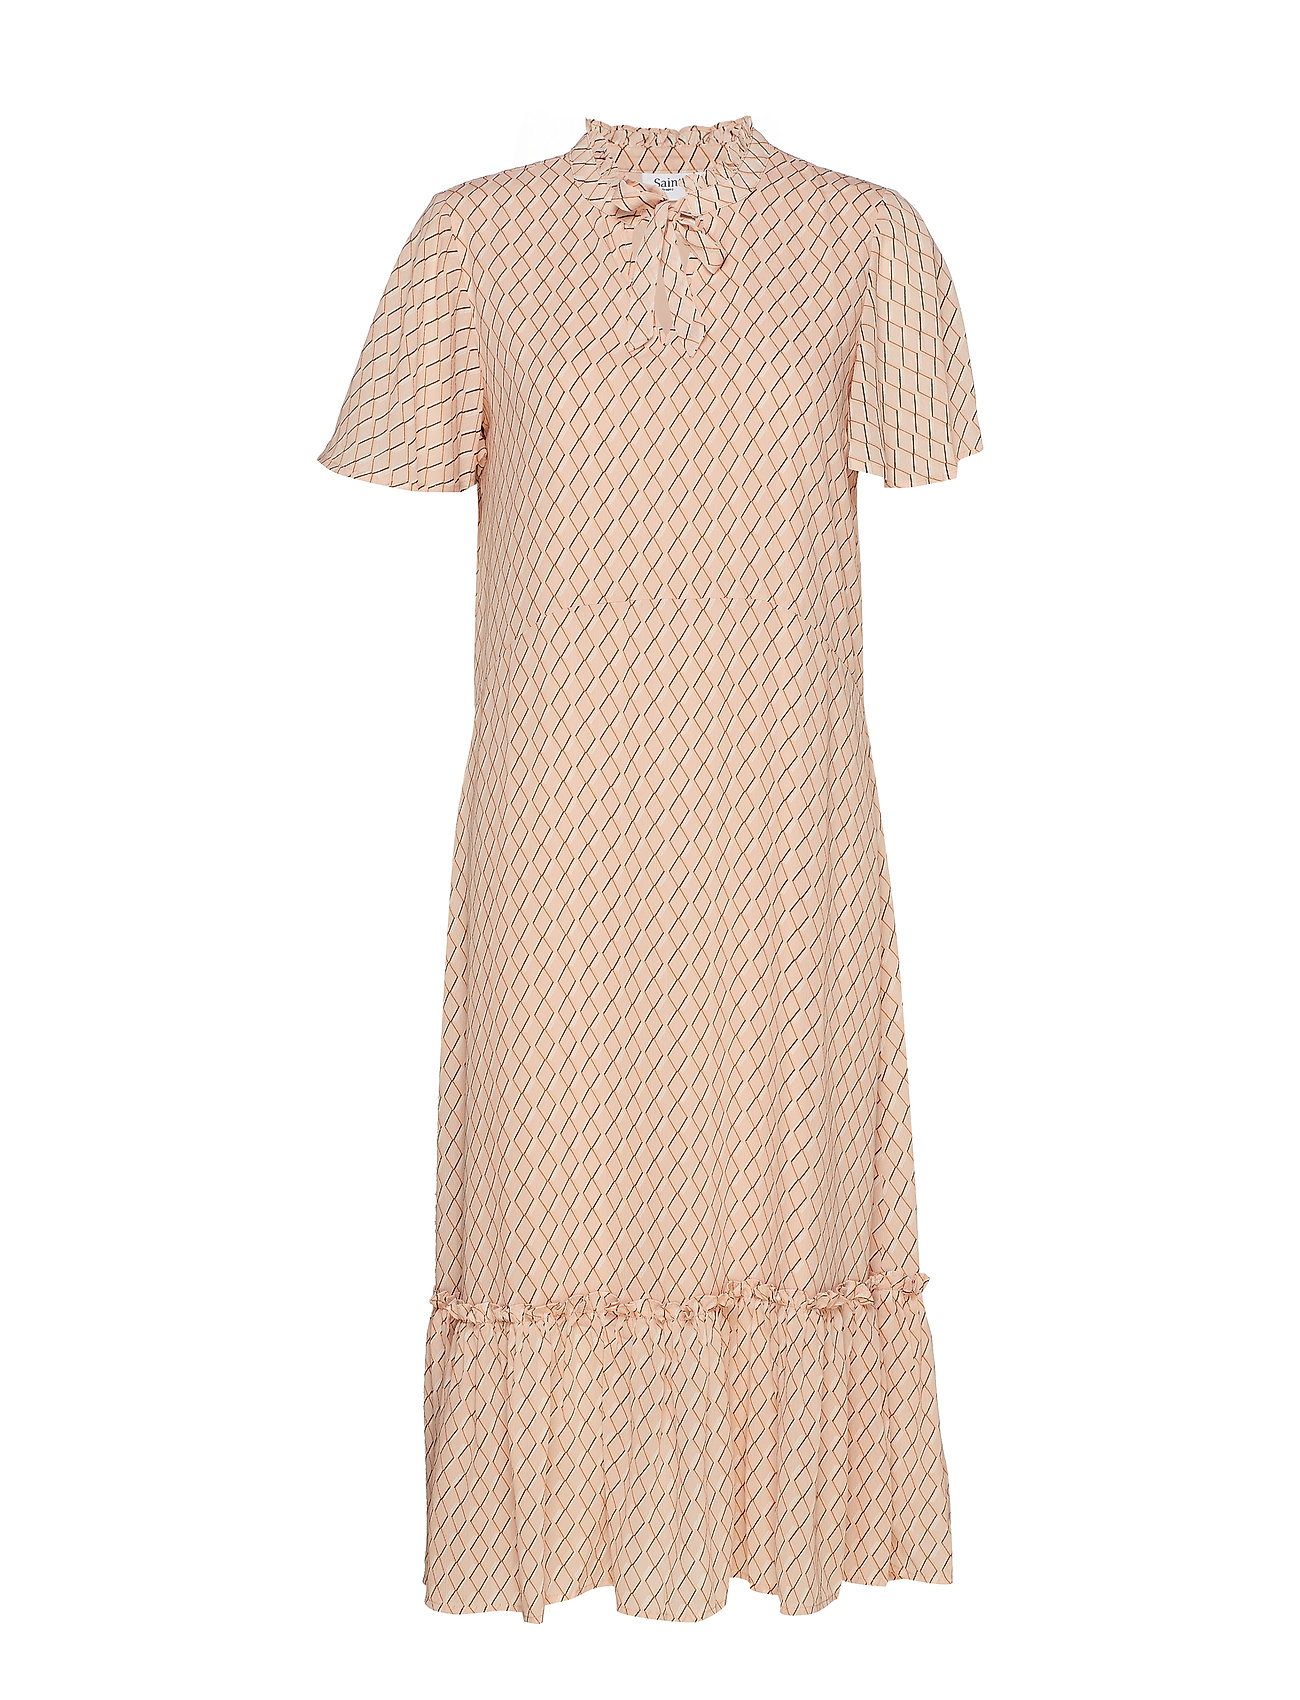 Saint Tropez U6114, WOVEN DRESS - MAXI - ROSE D.